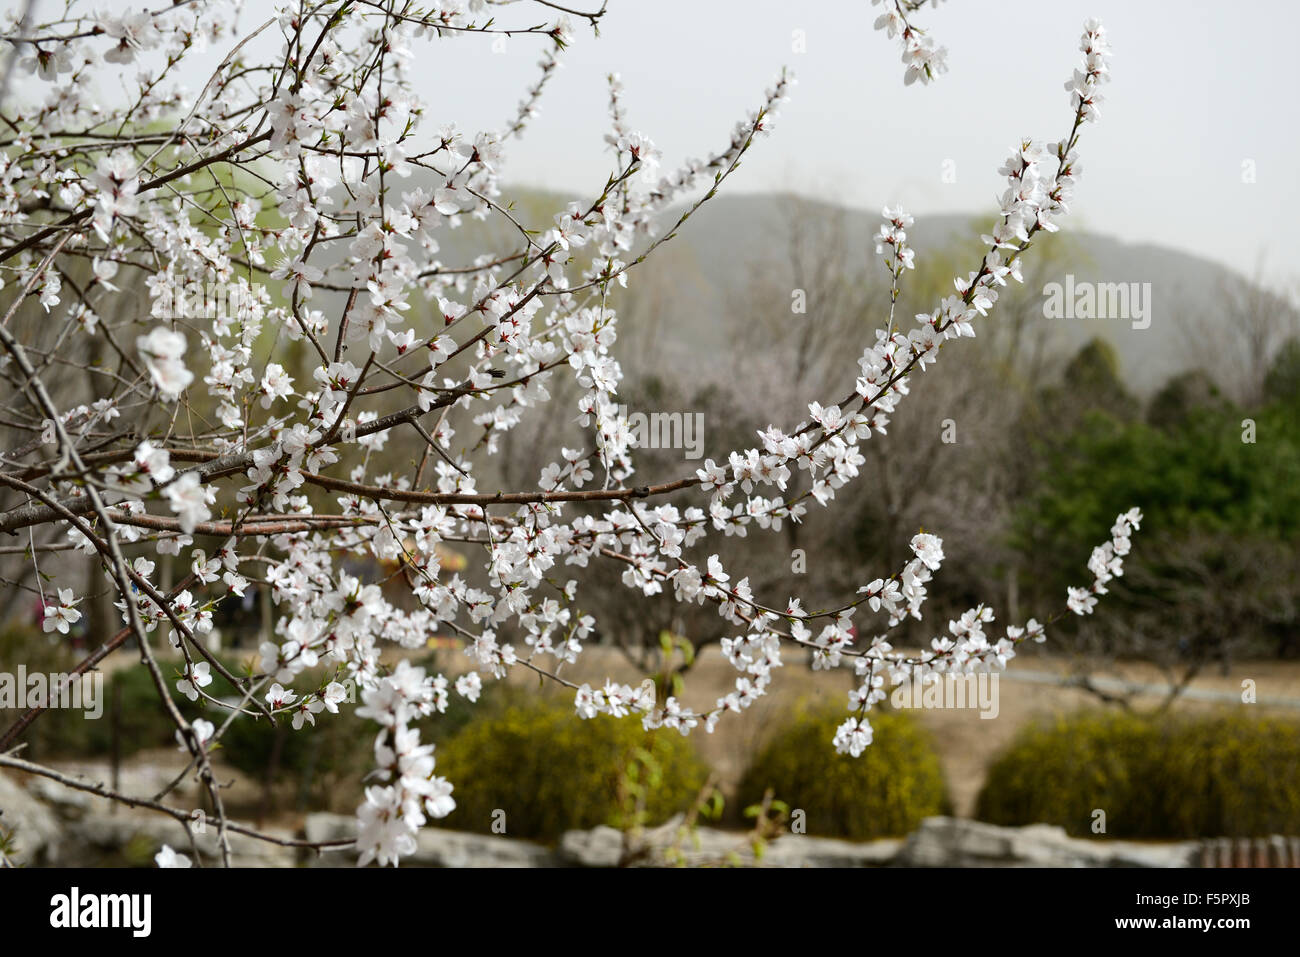 Prunus davidiana franch white flower flowers blossom blossoms prunus davidiana franch white flower flowers blossom blossoms chinese wild peach tree spring rm floral mightylinksfo